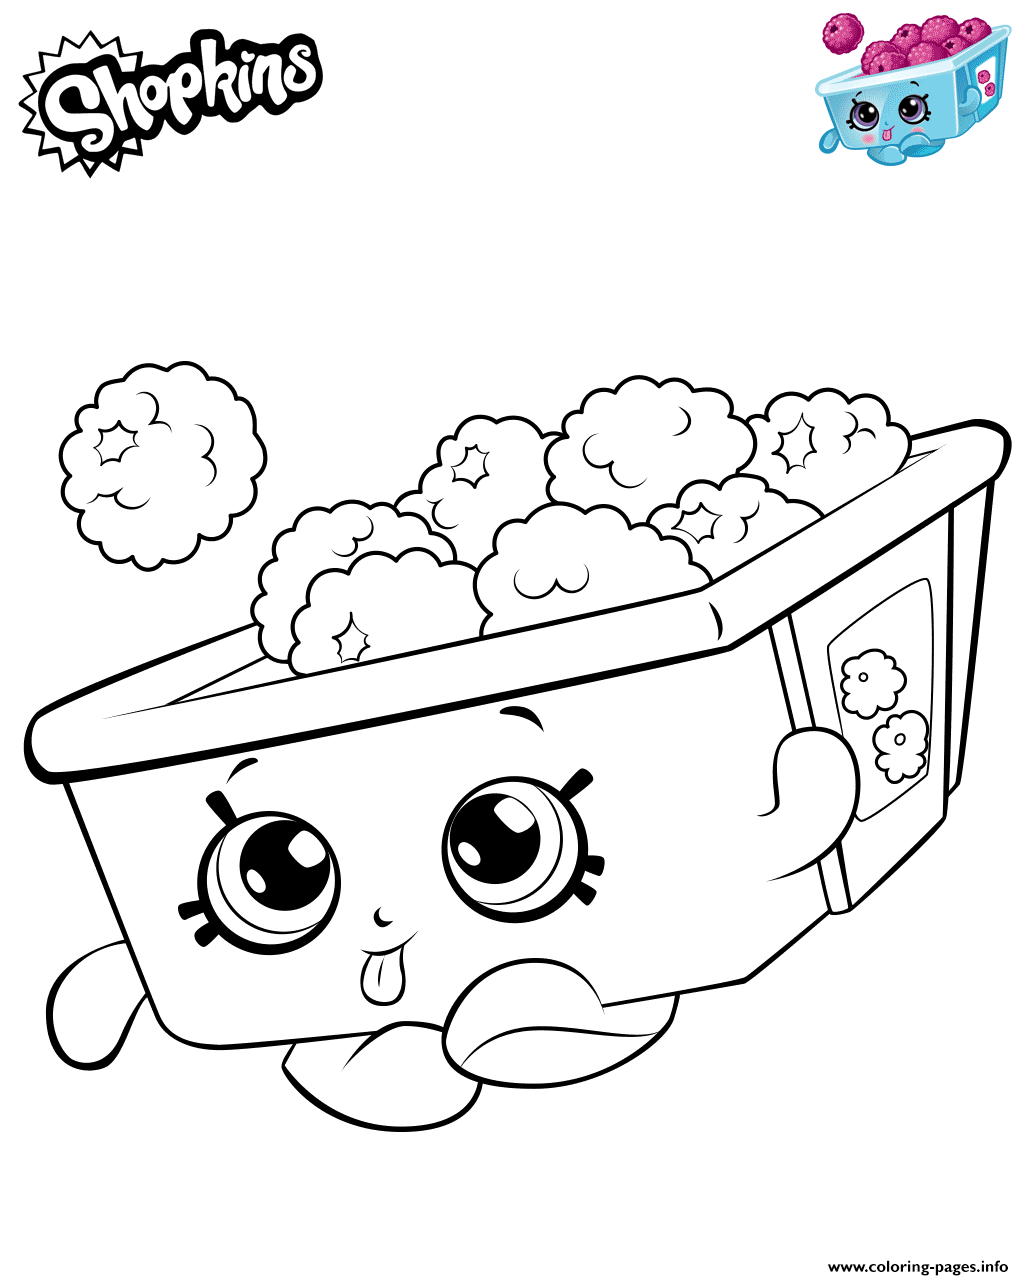 Print Raspberries Shopkins Coloring Pages Shopkins Colouring Pages Cute Coloring Pages Shopkins Coloring Pages Free Printable